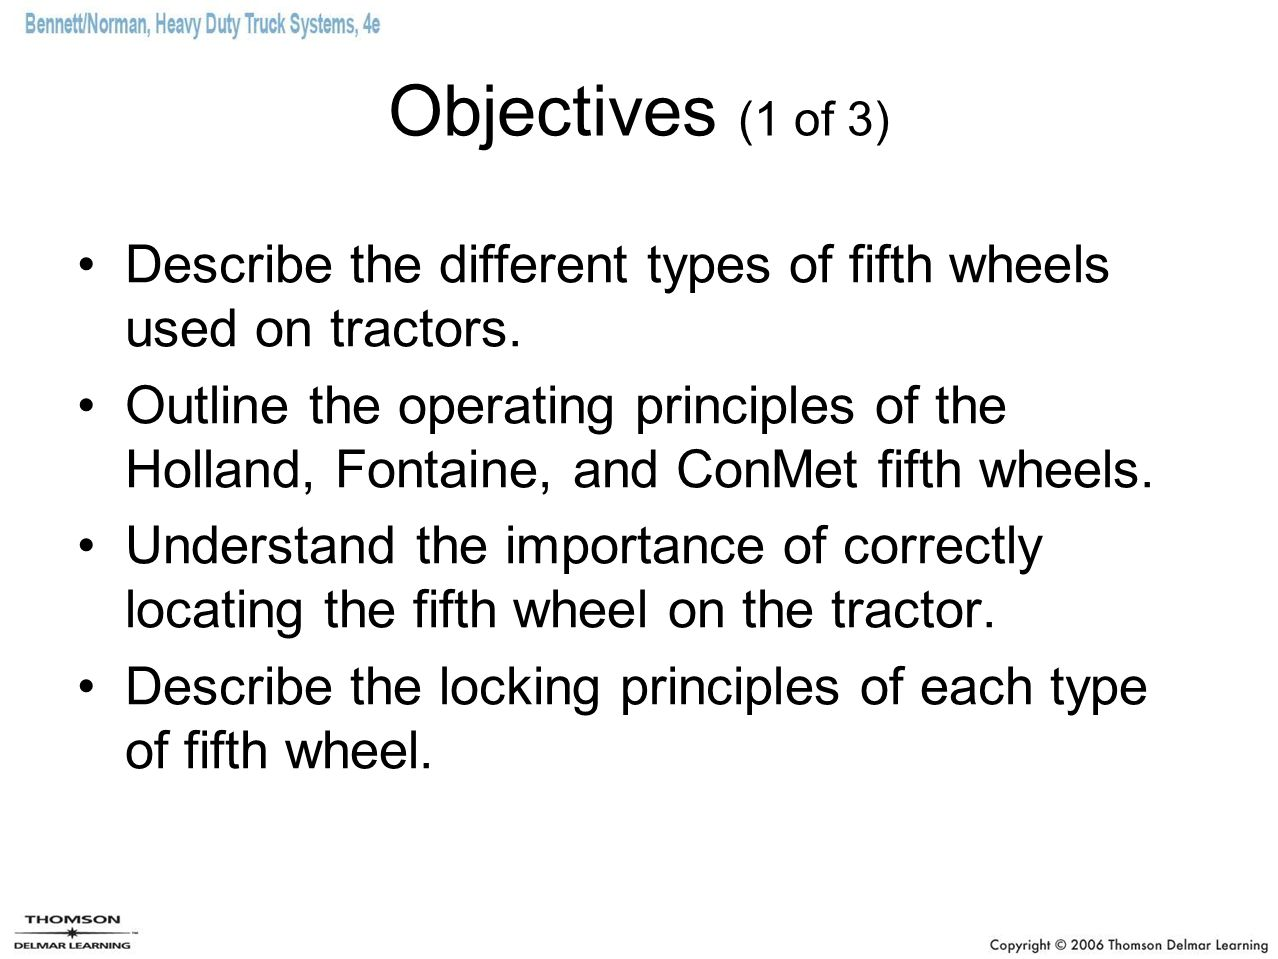 Objectives (1 of 3) Describe the different types of fifth wheels used on tractors.